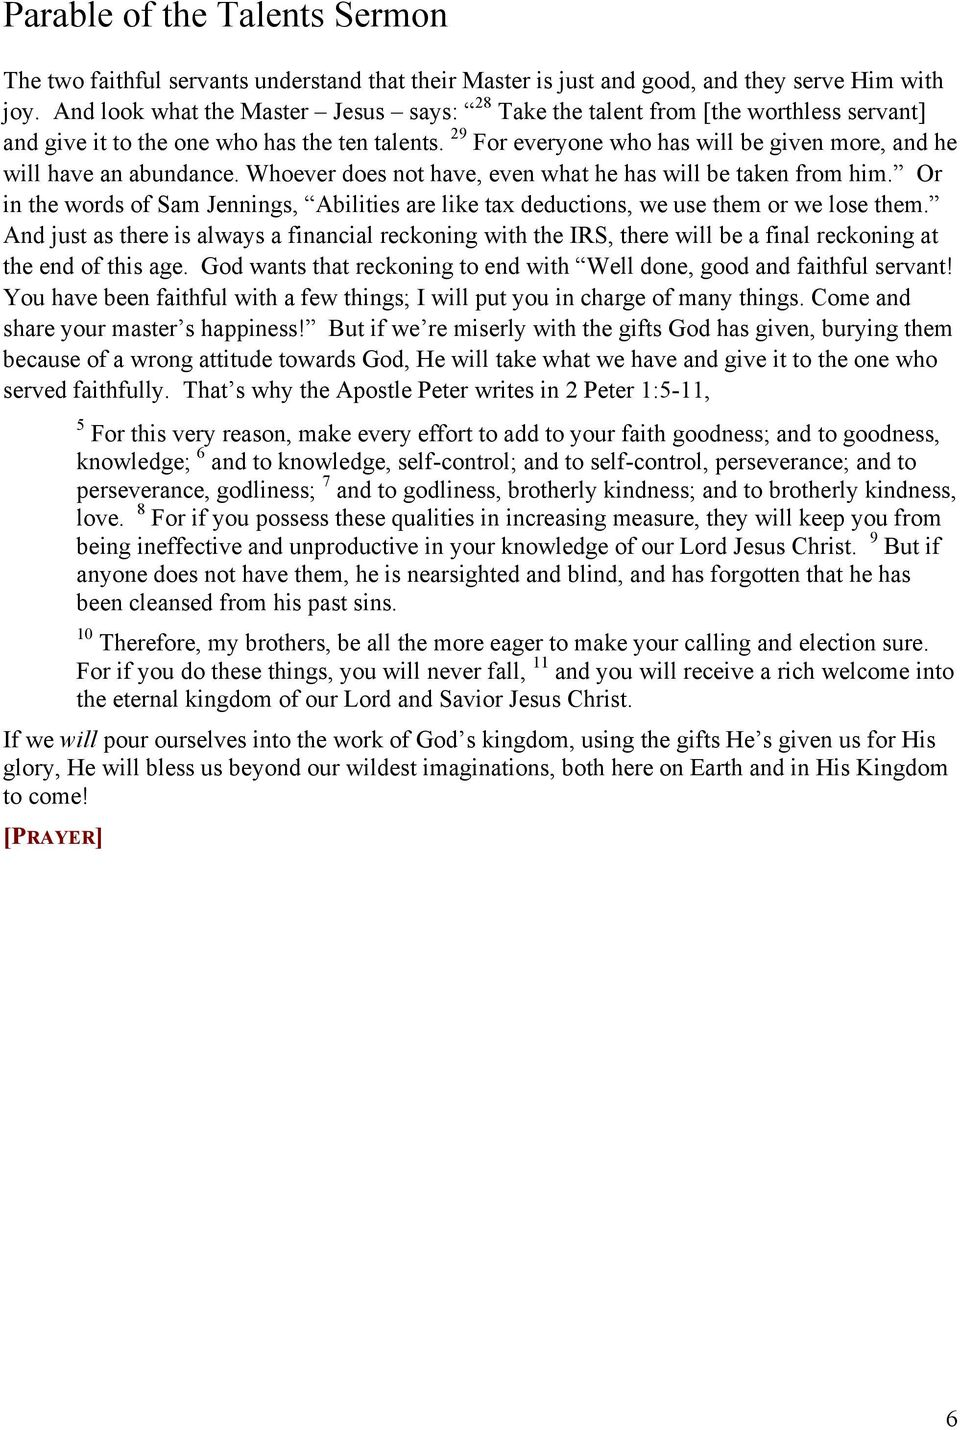 Parable of the Talents Sermon - PDF